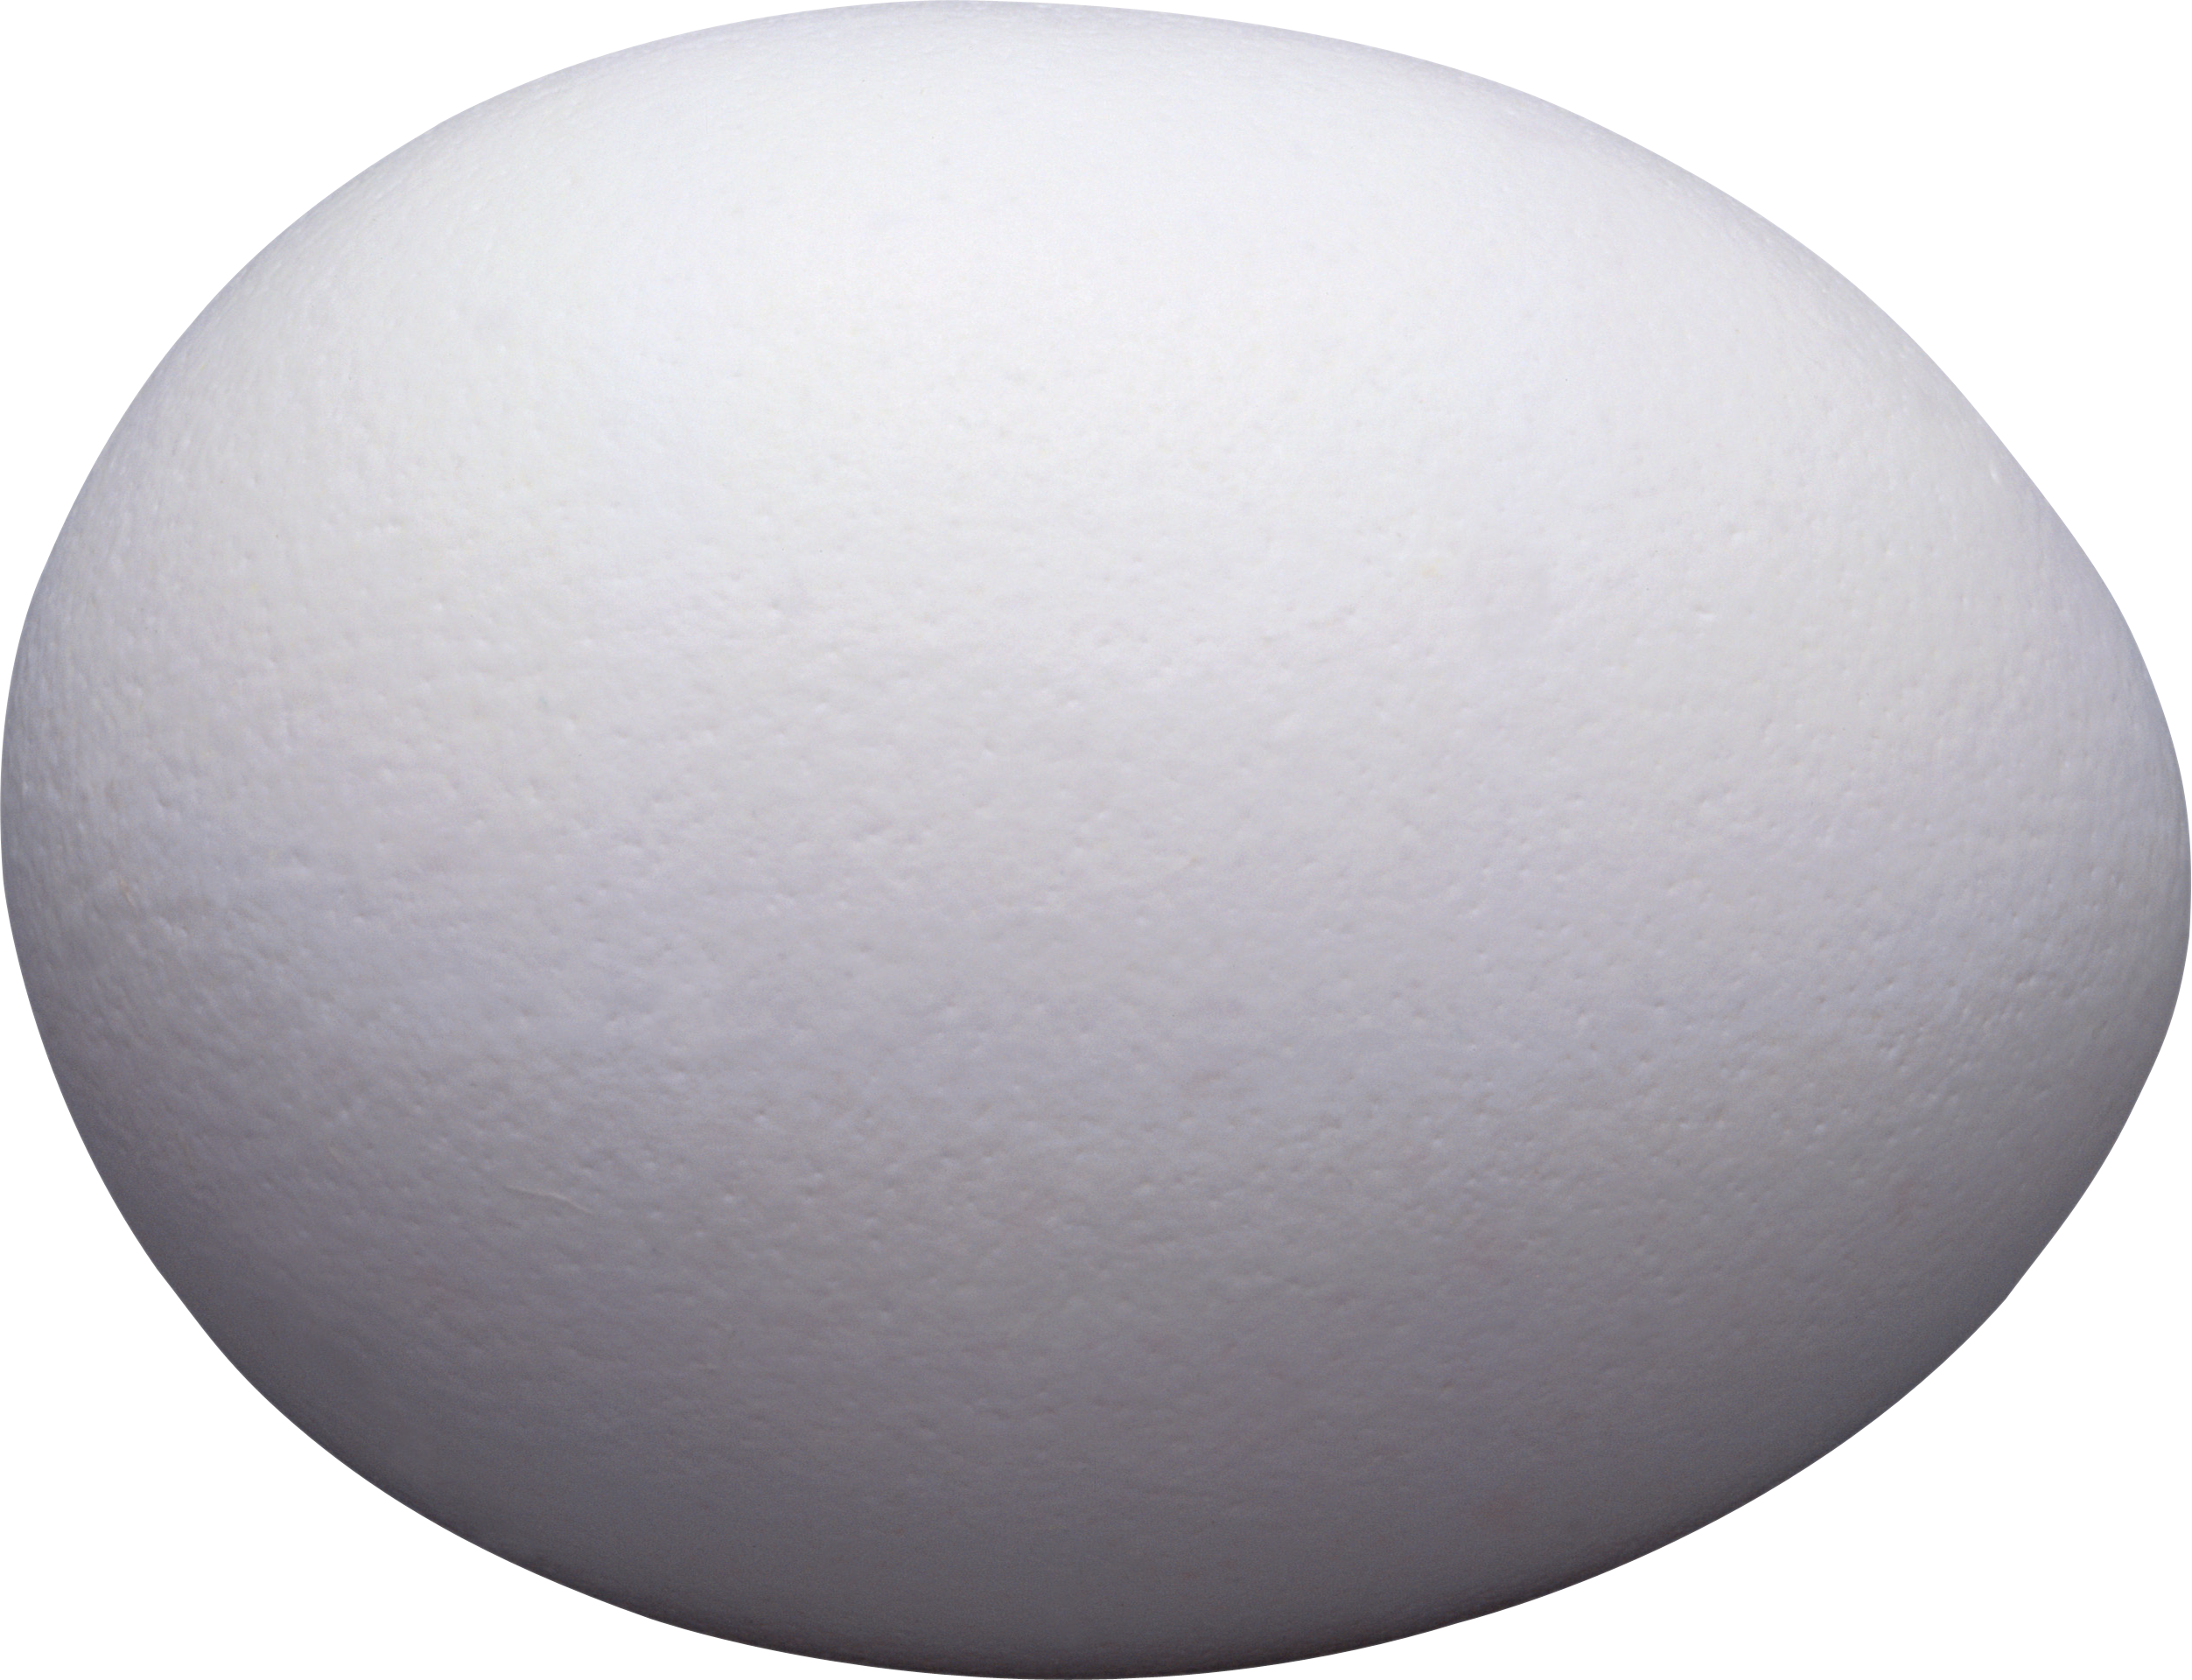 One White Egg